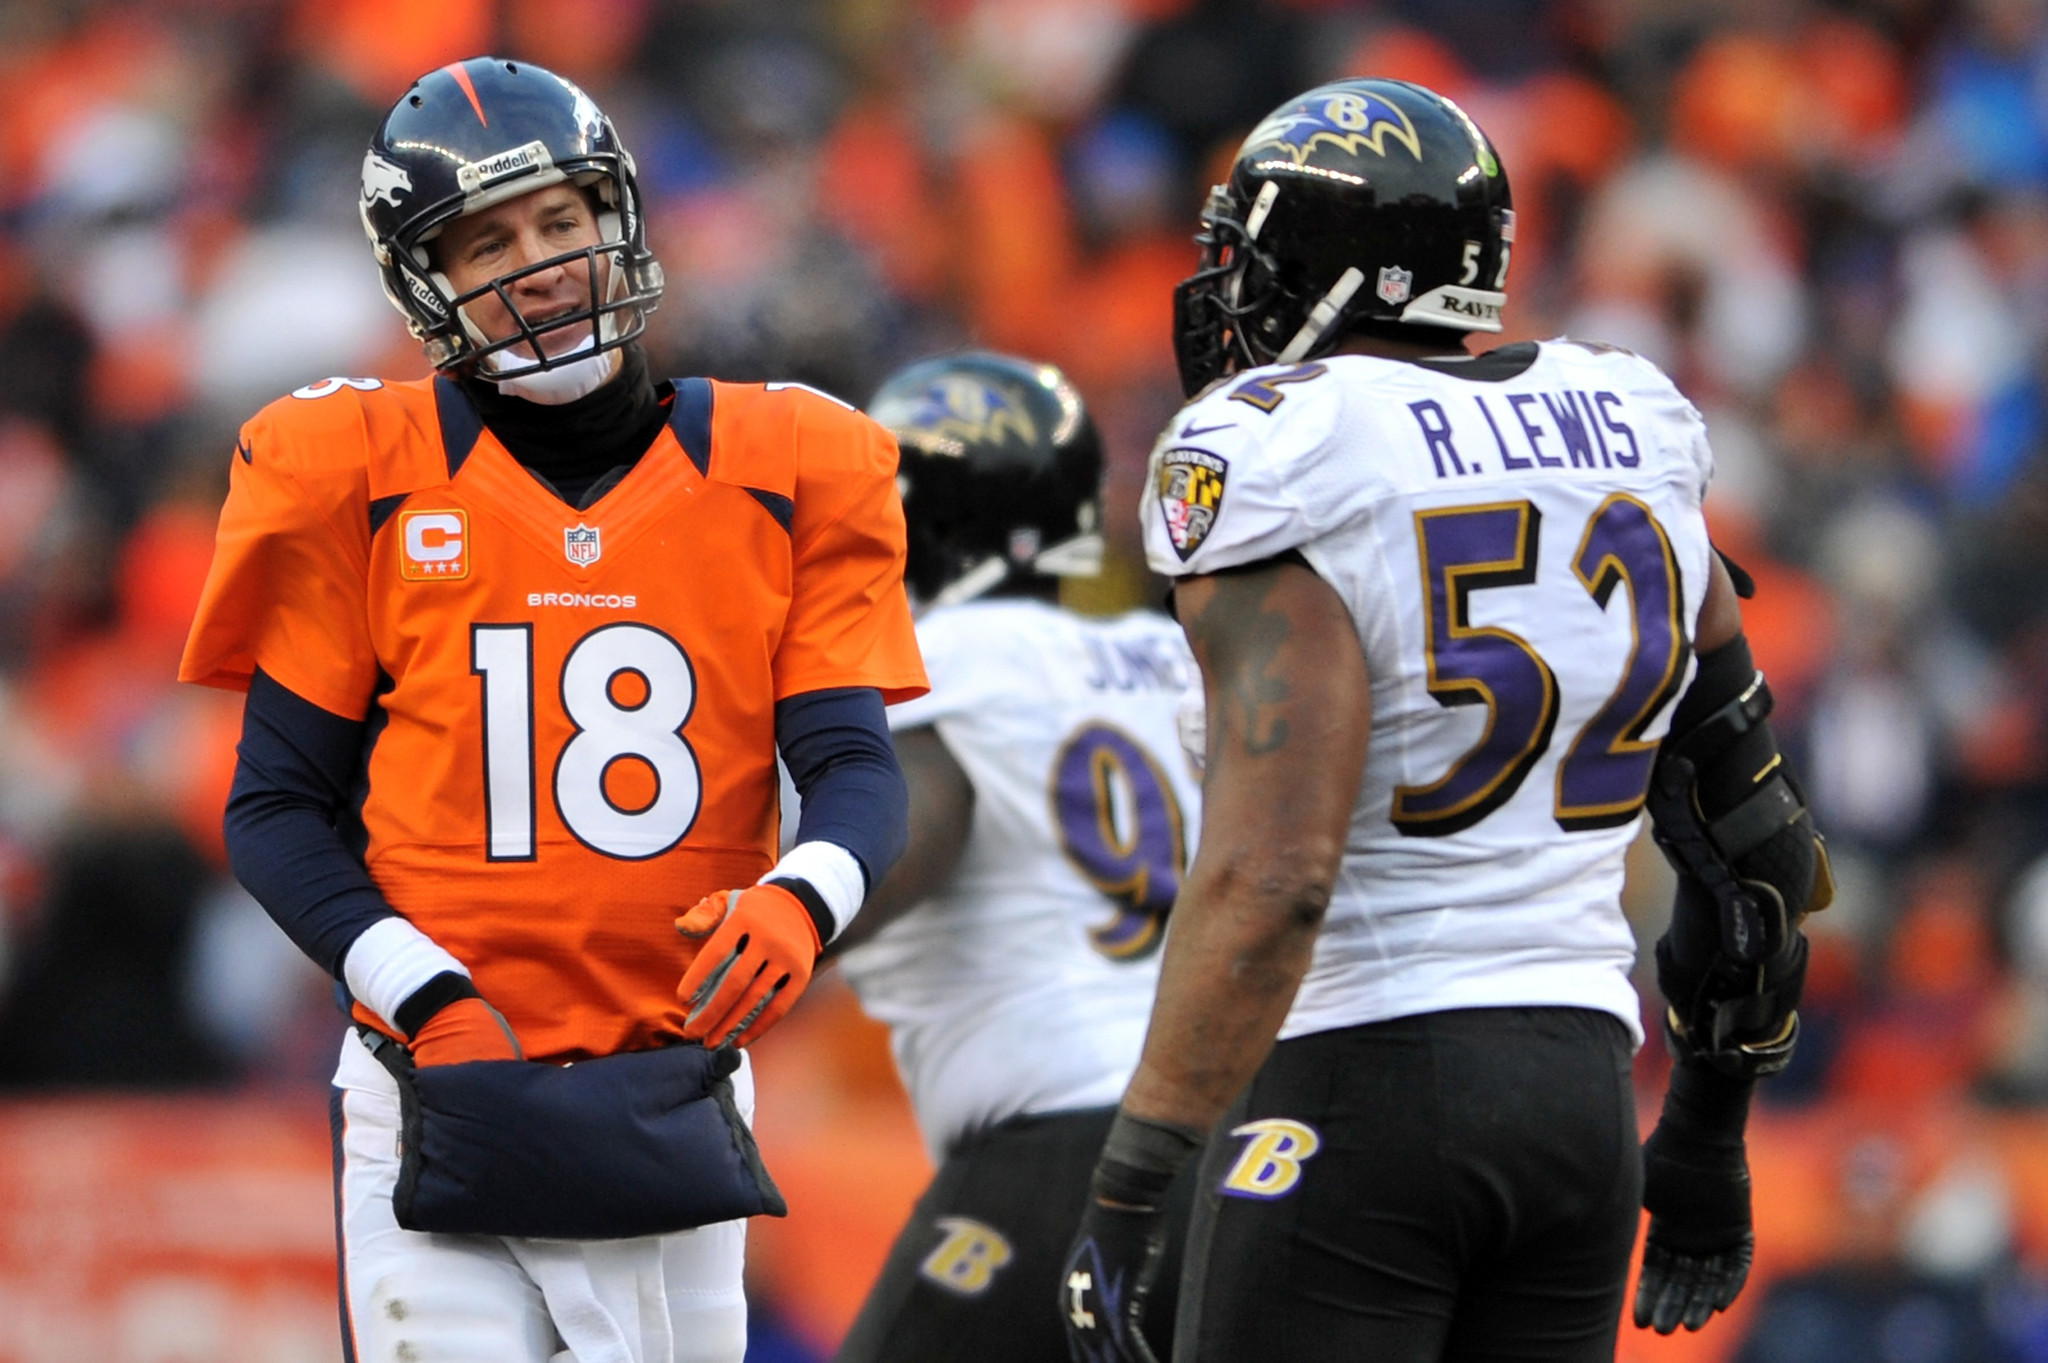 Bal-peyton-manning-on-why-ray-lewis-retirement-was-the-greatest-day-of-my-life-20170327